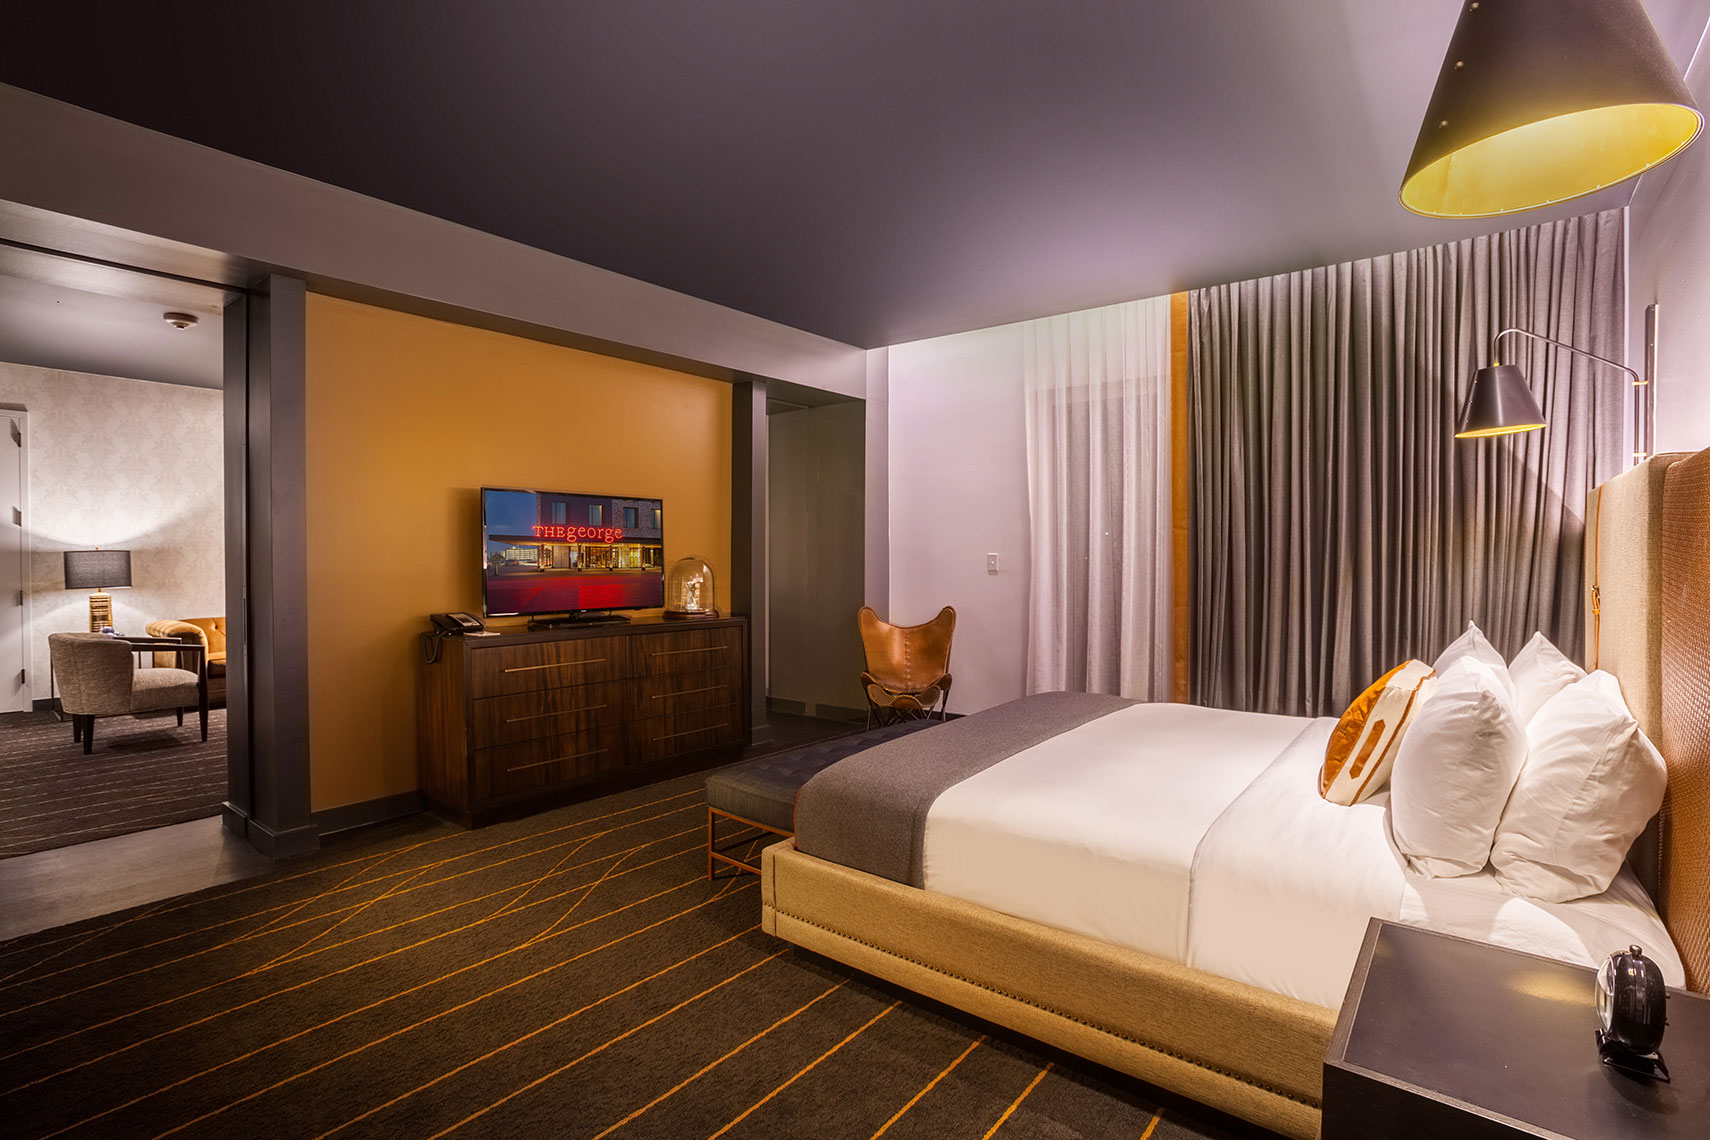 Hotel Room photography by Texas Architectural Photographer Shannon O